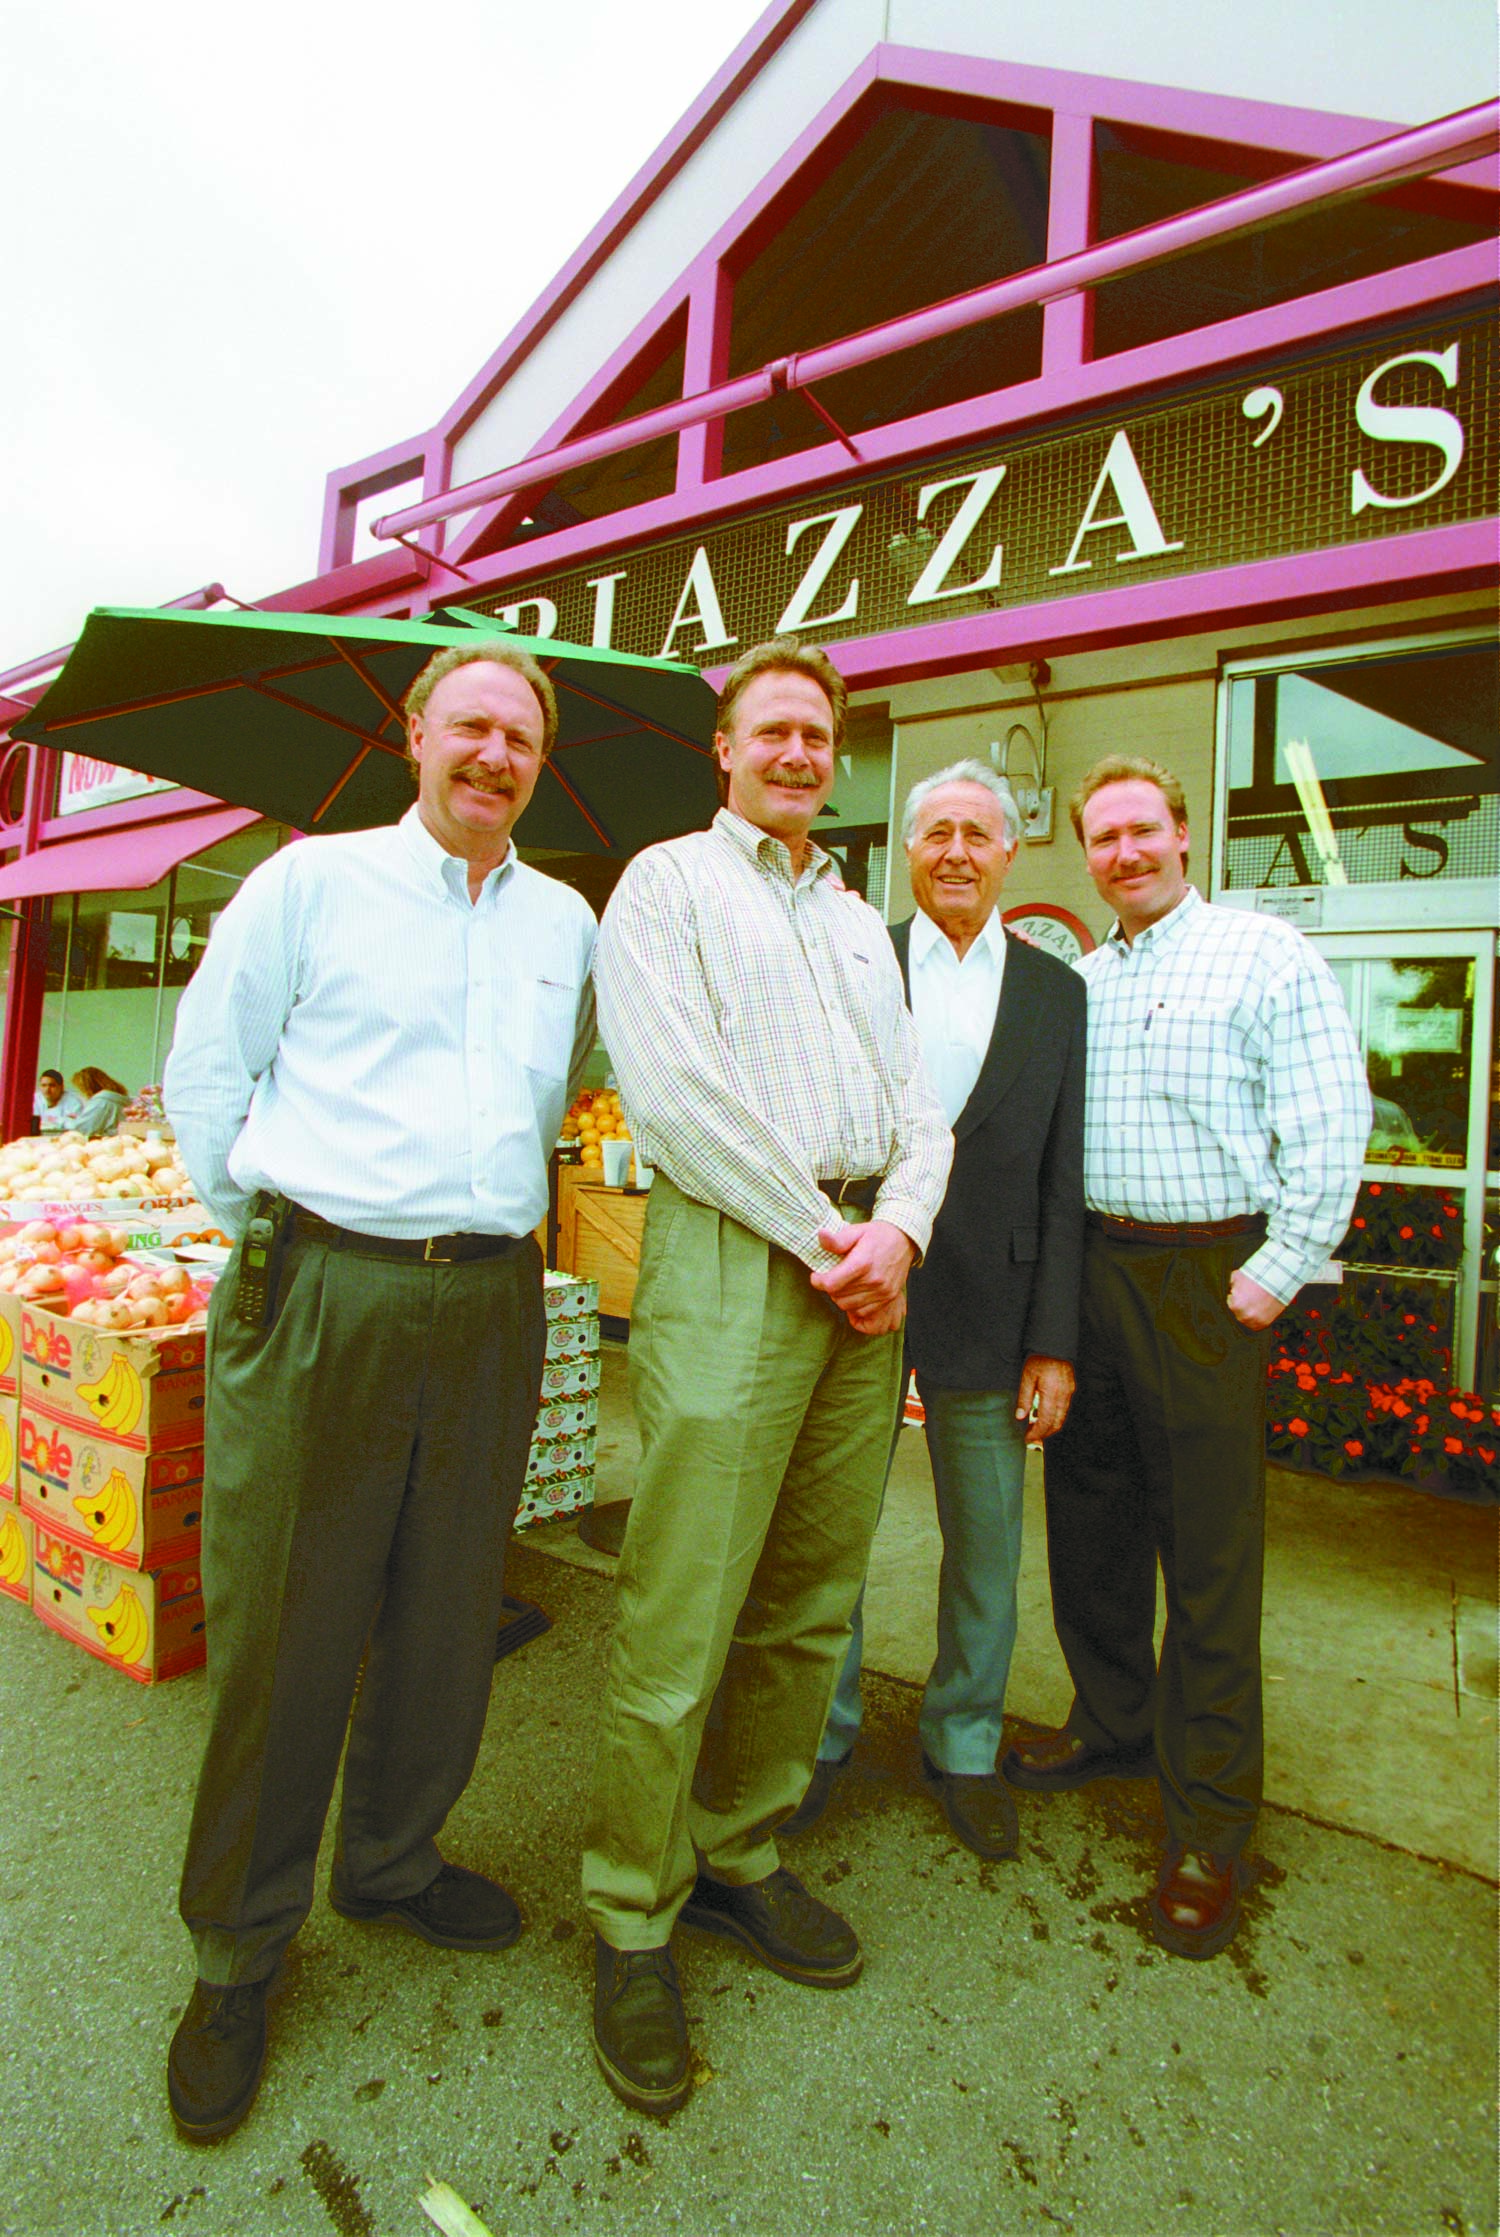 John Piazza Jr., Gary Piazza, John Piazza Sr. and Rick Piazza pose outside of their grocery store in Palo Alto. The family previously opened a grocery store in Park Merced neighborhood in San Francisco.Weekly file photo.